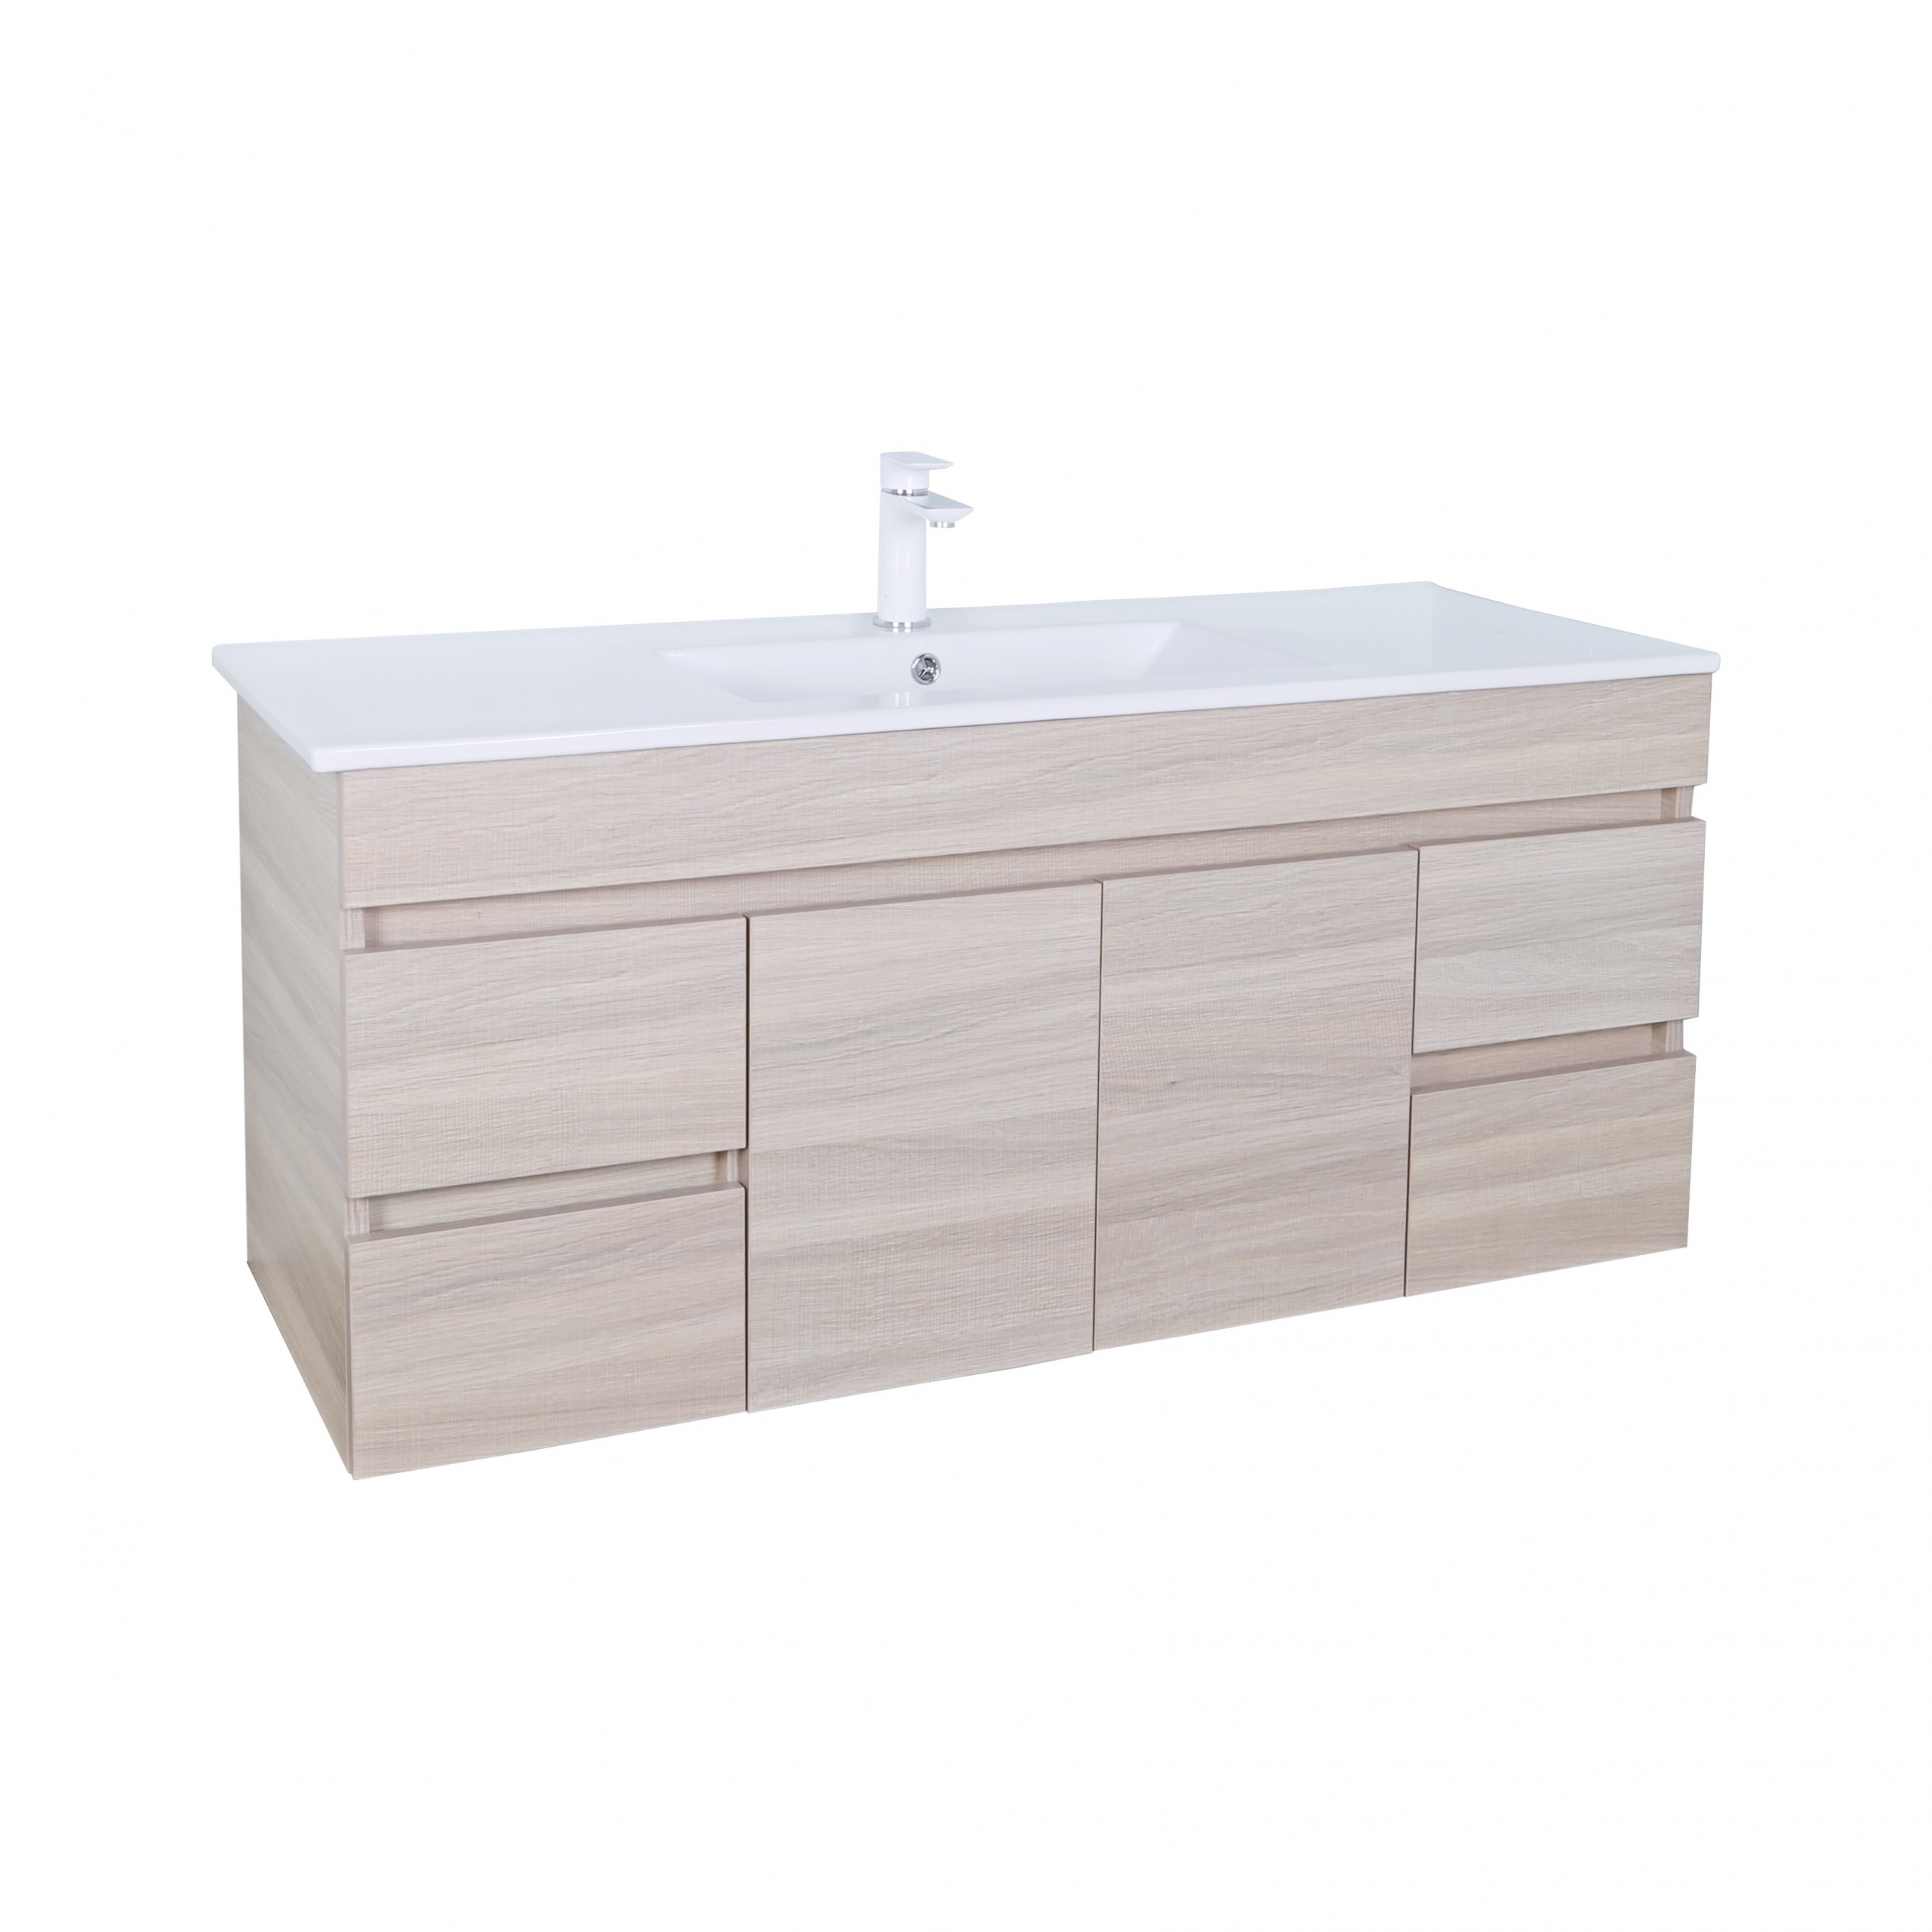 EV154WH-OAK Evie Color Vanity